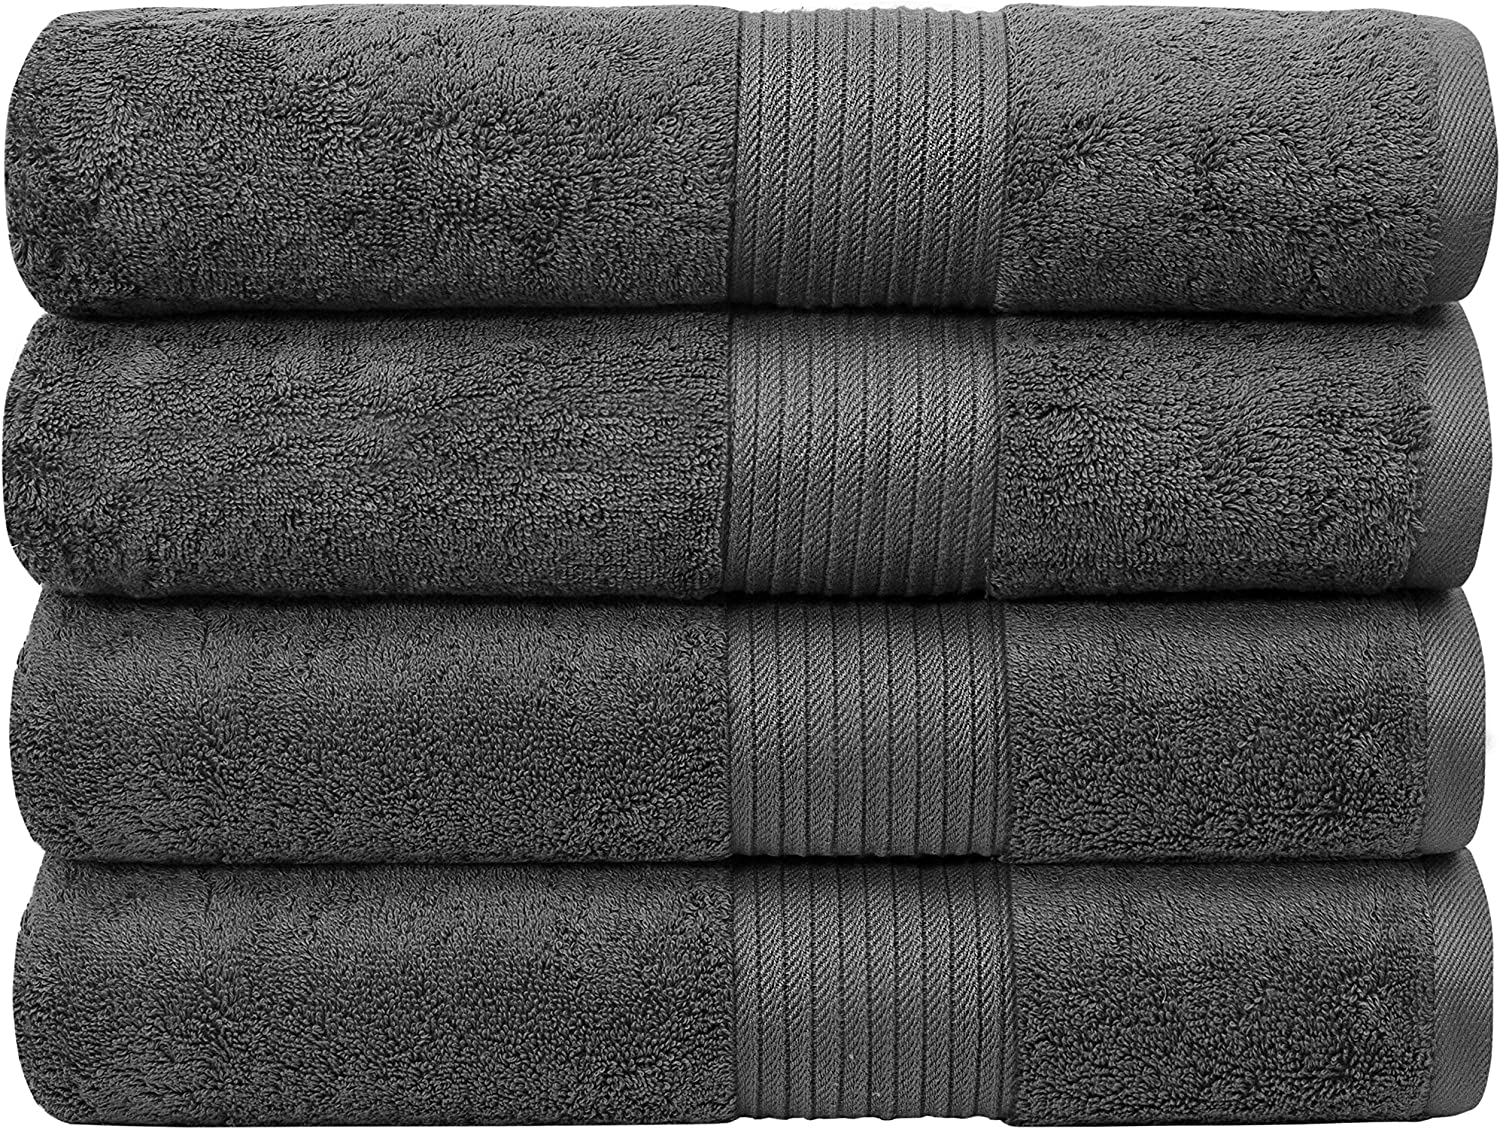 """Bliss Luxury Bath Towels Set - 34"""" x 56"""" Extra Large Premium Quality Bath Sheet - 650 GSM - Soft Combed Cotton, Absorbent (Dark Grey, 4 Pack): Home & Kitchen"""